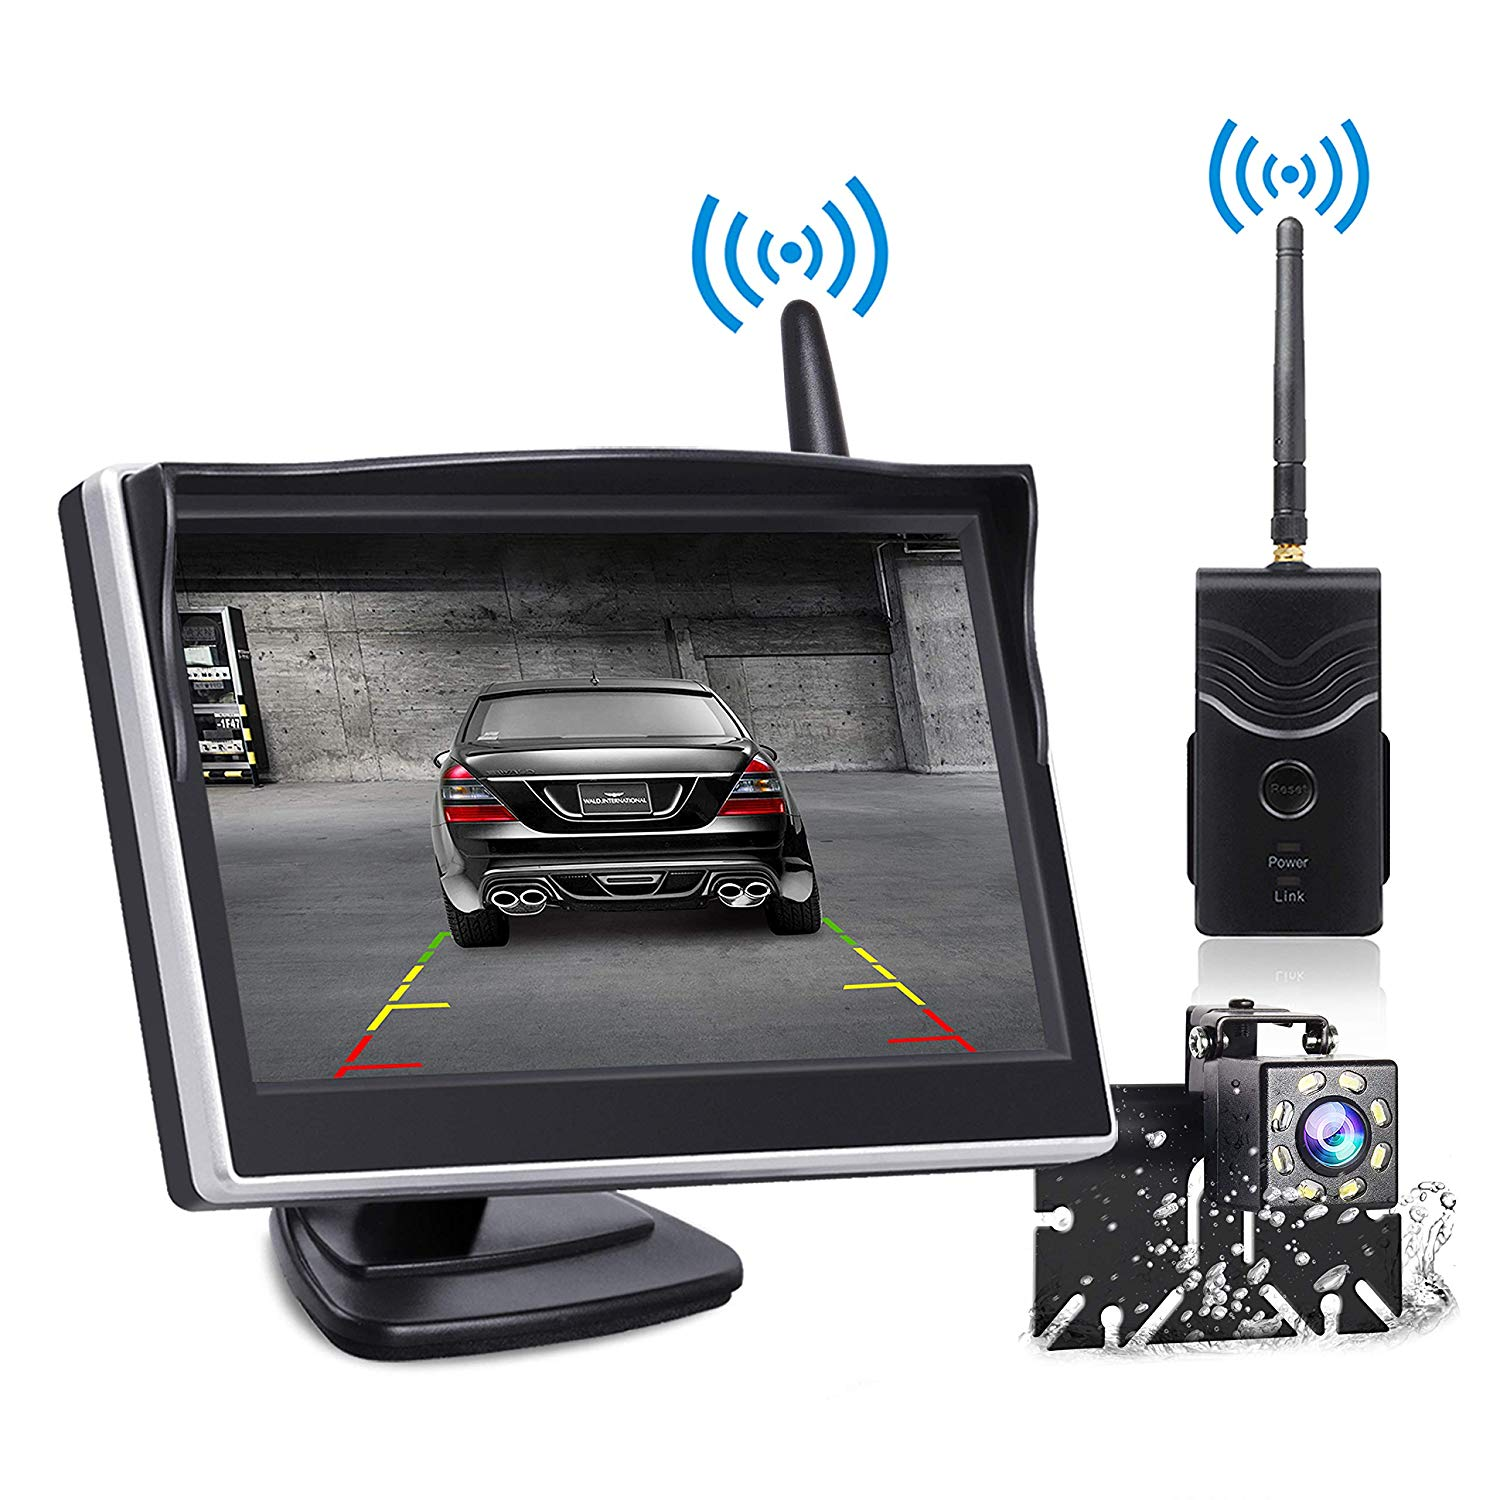 Yakry Ya25e Hd 1080p Digital Wireless Dual Backup Camera Hitch Rear View Camera For Cars Trailers Trucks Rvs 5th Wheels 5monitor With Highway Monitoring System Ip69k Waterproof Super Night Vision Electronics Car Electronics